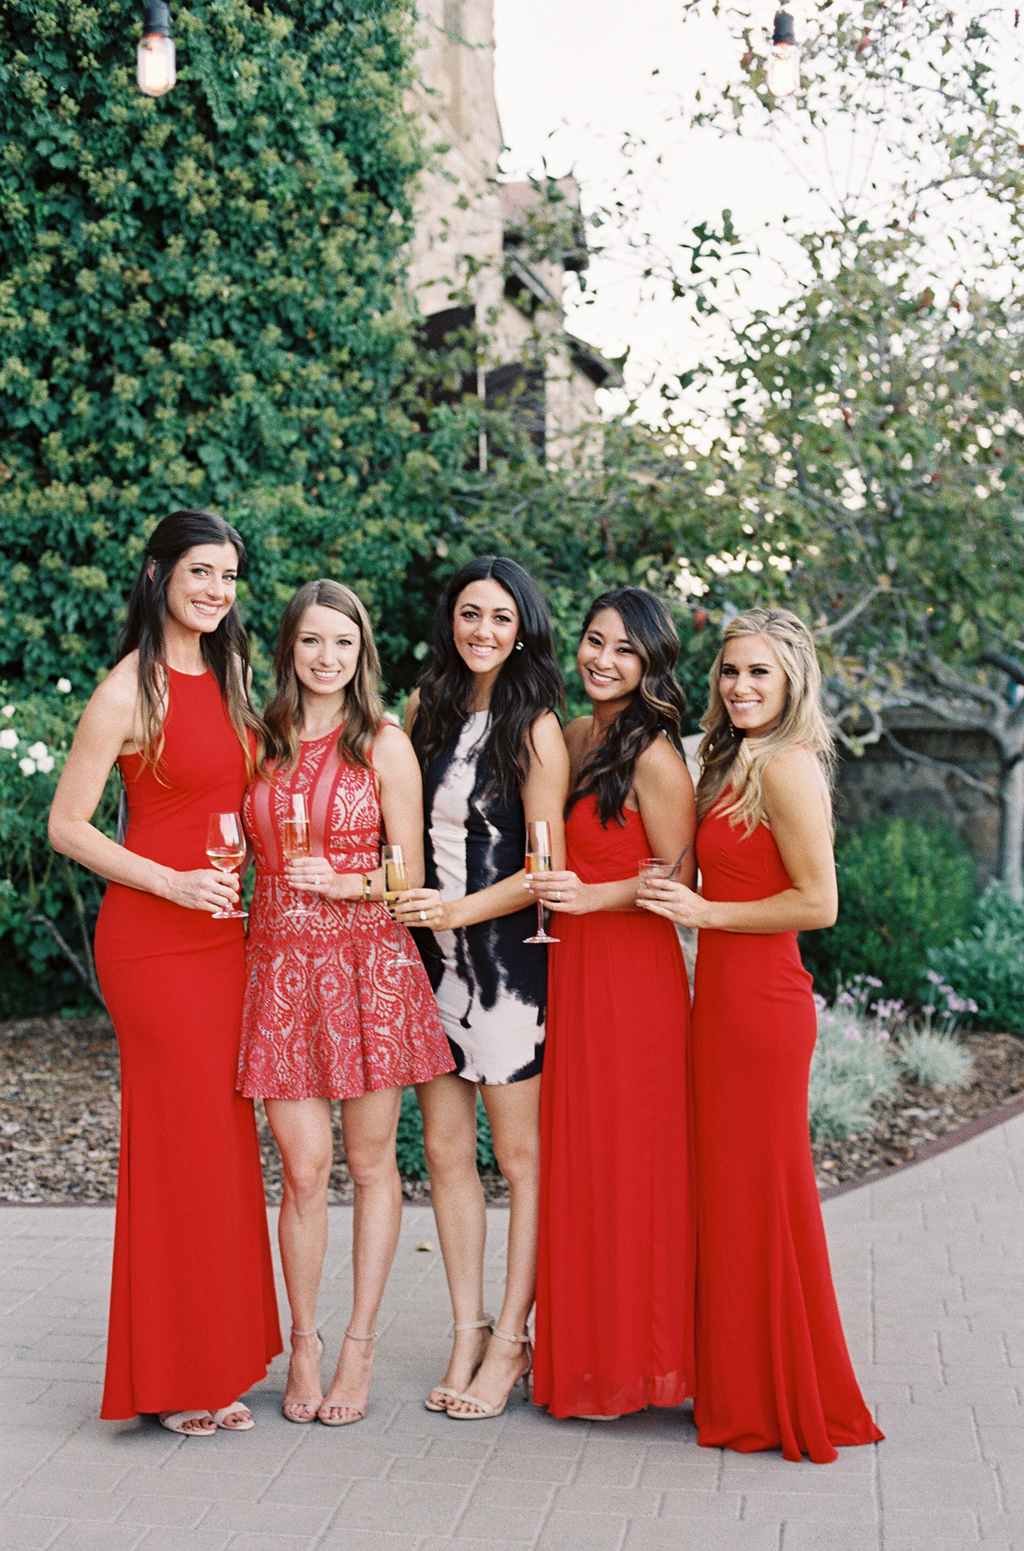 Bridesmaids wearing red dresses during the cocktail hour at a Napa Valley Wedding.